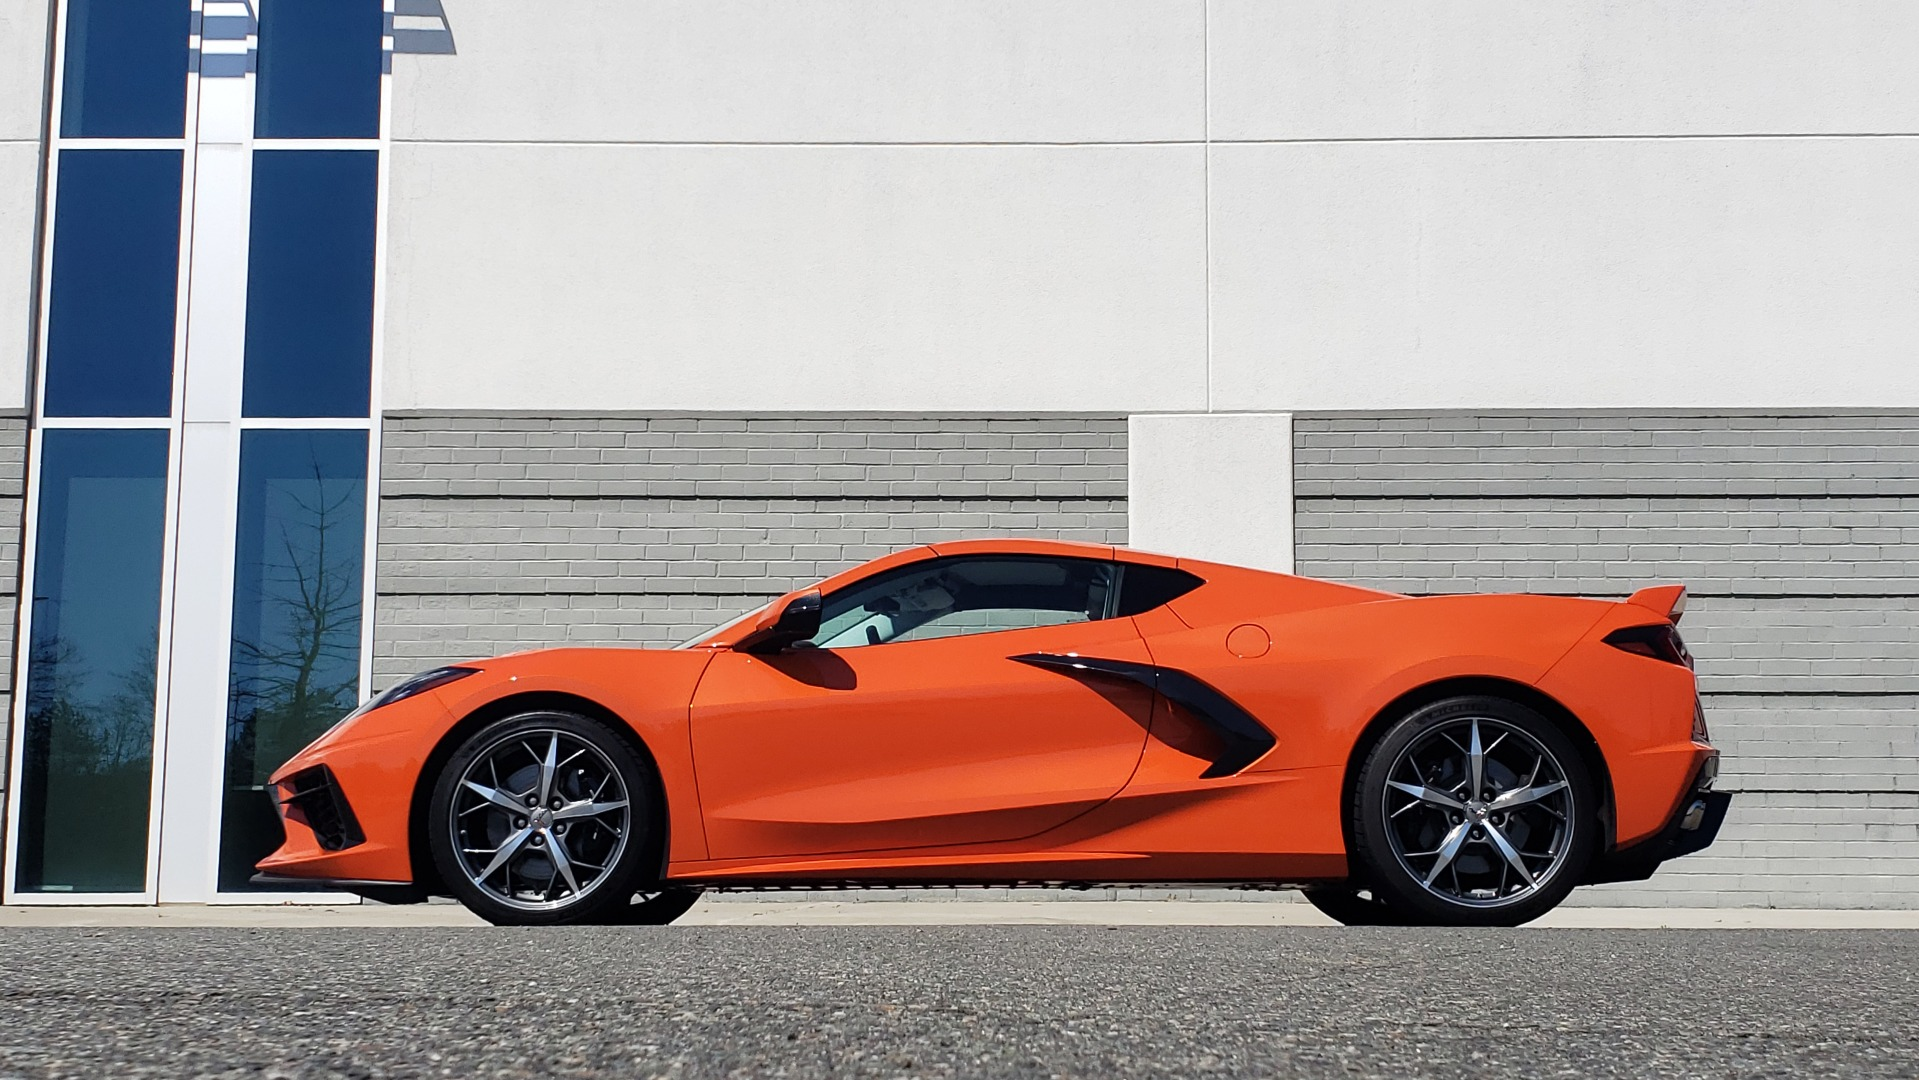 Used 2020 Chevrolet CORVETTE C8 STINGRAY 3LT COUPE / NAV / BOSE / CAMERA / LIKE NEW for sale Sold at Formula Imports in Charlotte NC 28227 6